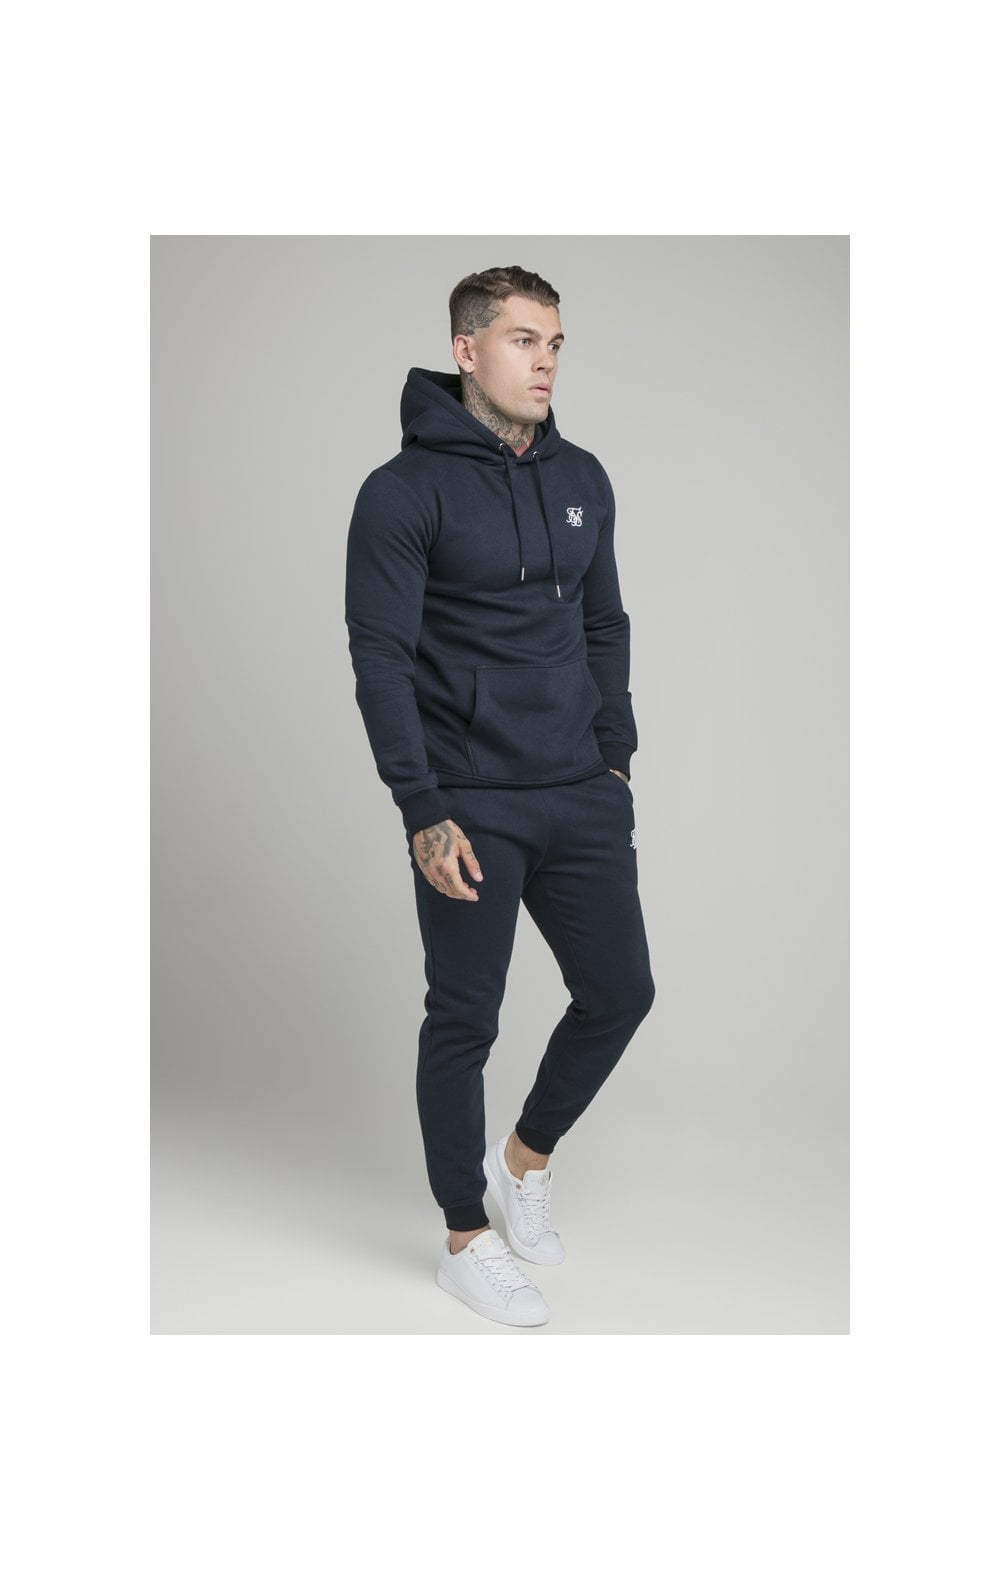 Load image into Gallery viewer, SikSilk Muscle Fit Overhead Hoodie - Navy (2)